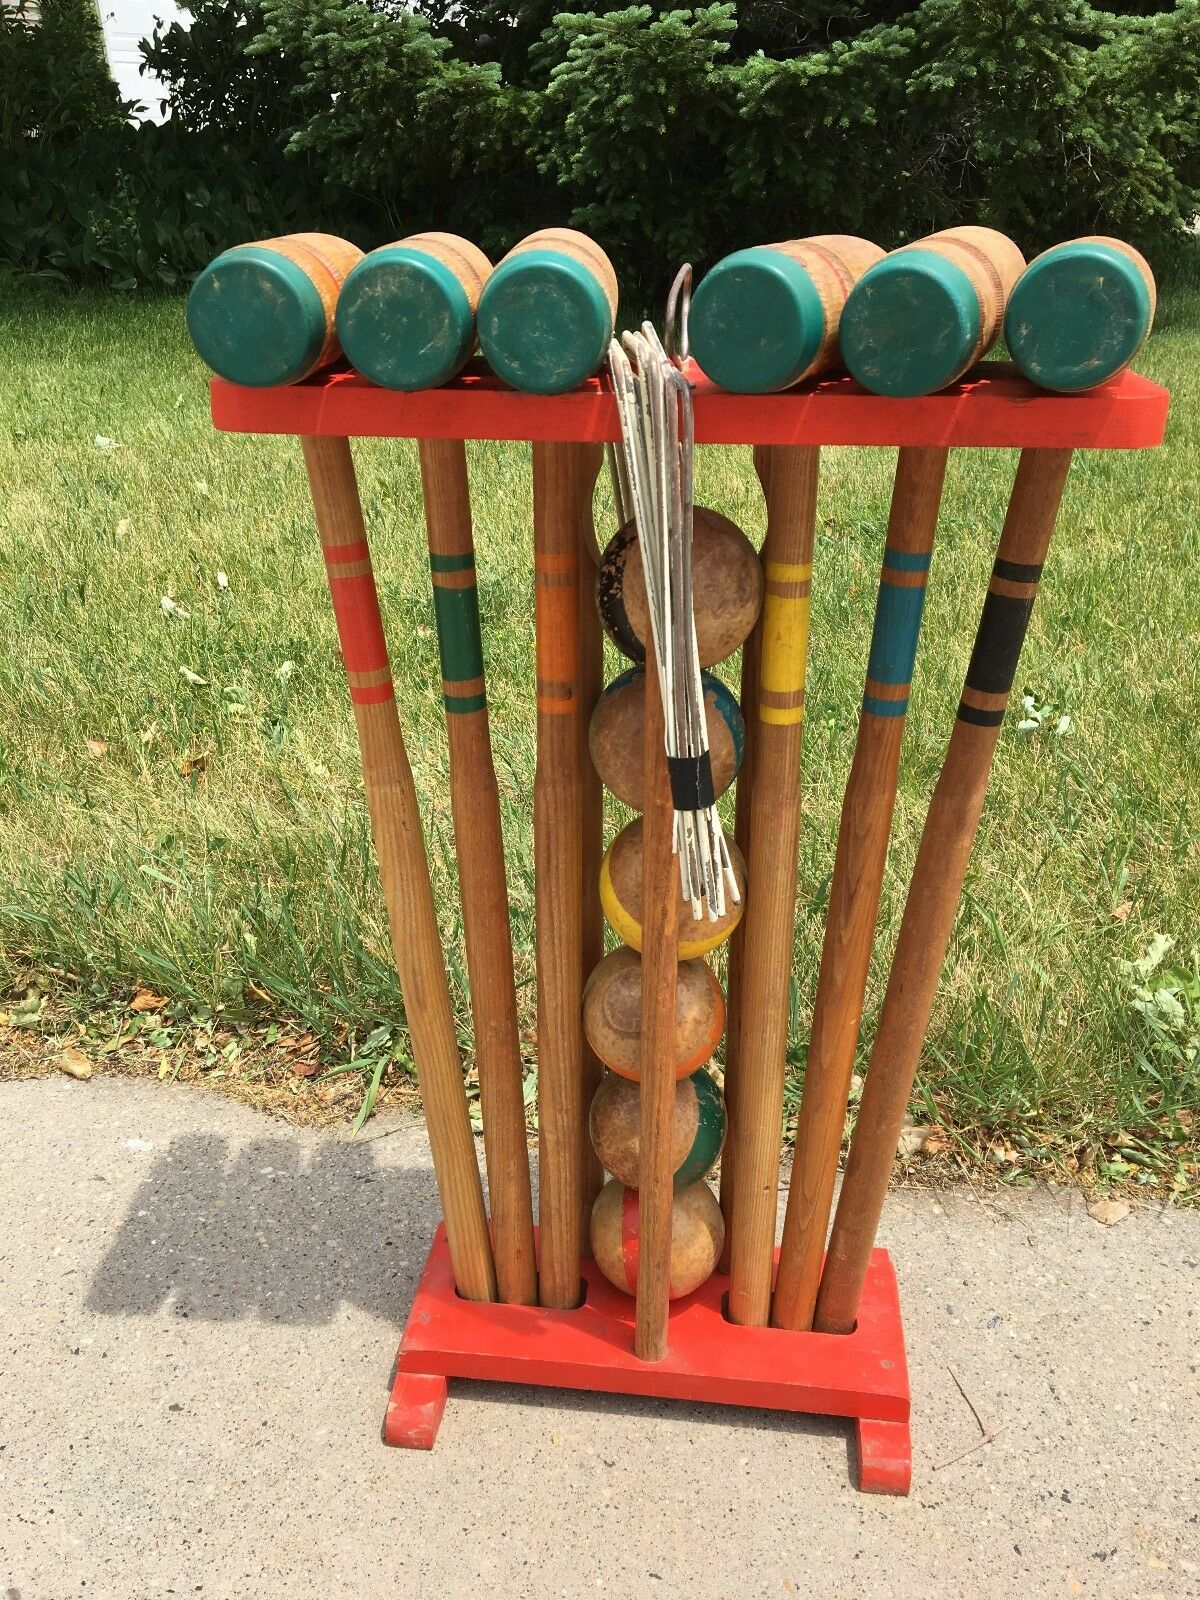 Vintage Wood Croquet Set, 6 Clubs, 6 Balls, 9 hoops and Stand                 j(